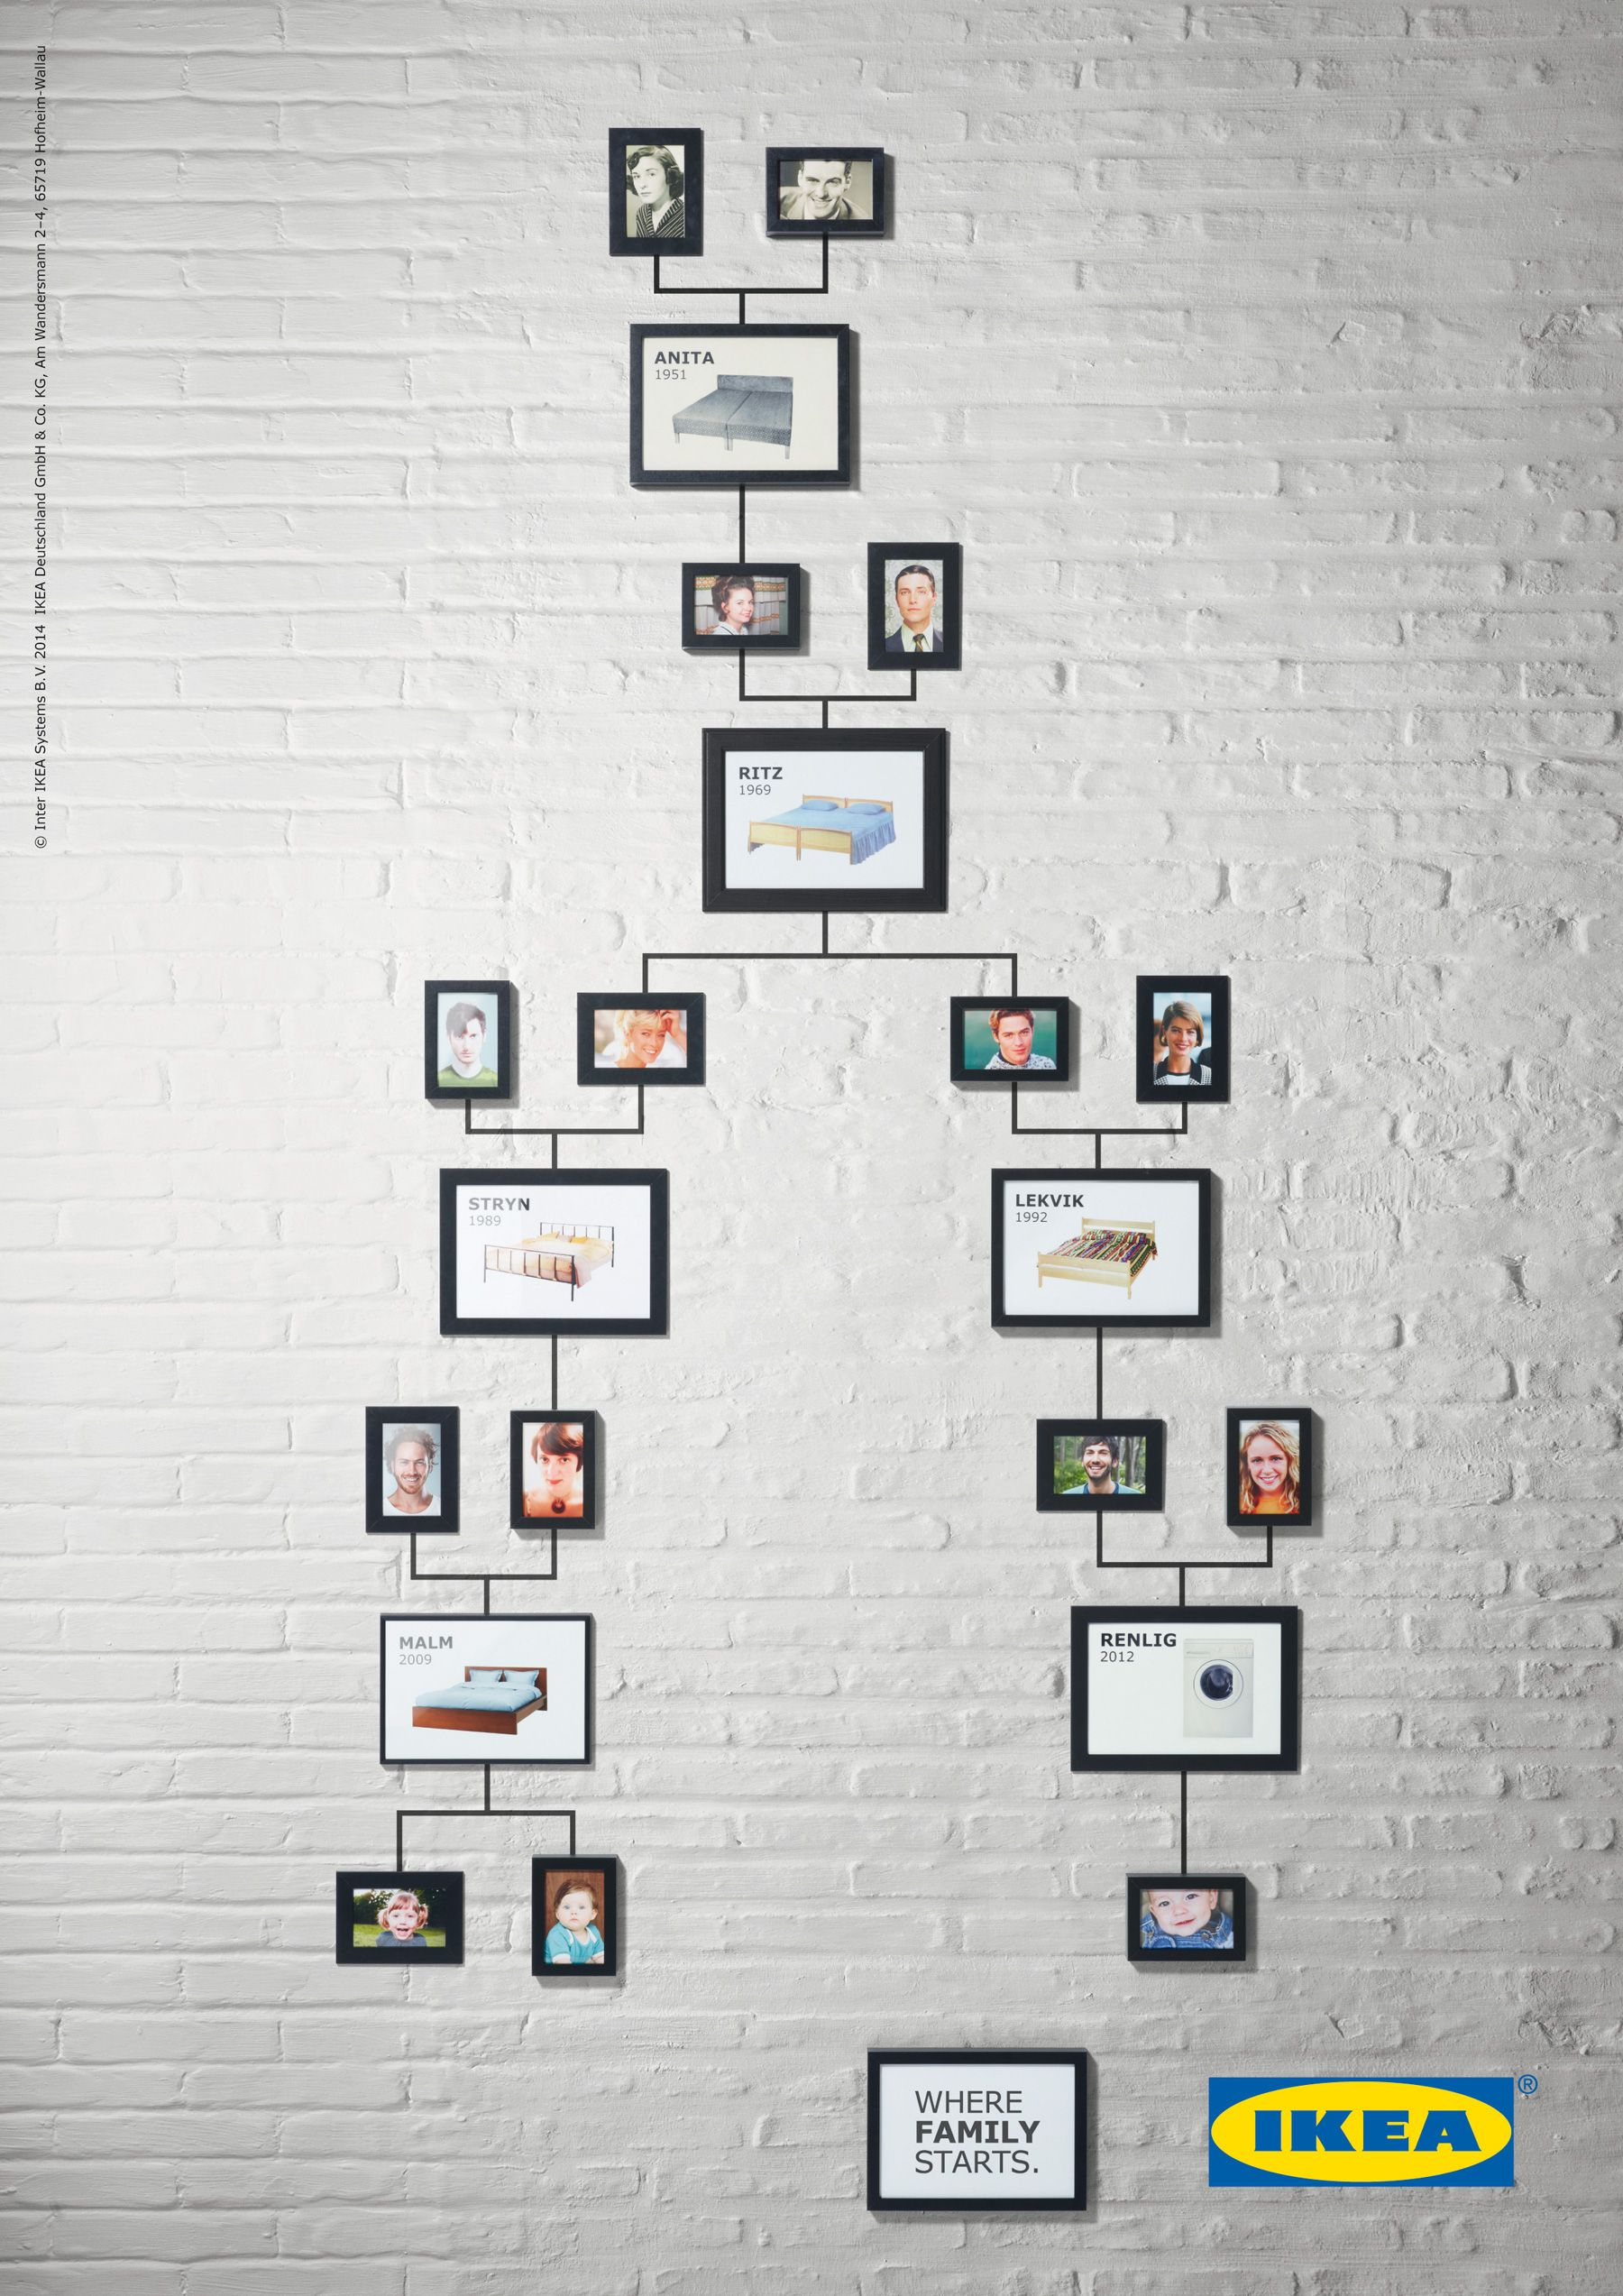 The Ikea Family Tree Advertising Ads Pinterest Technologie  # Ikea Annonce Publicite